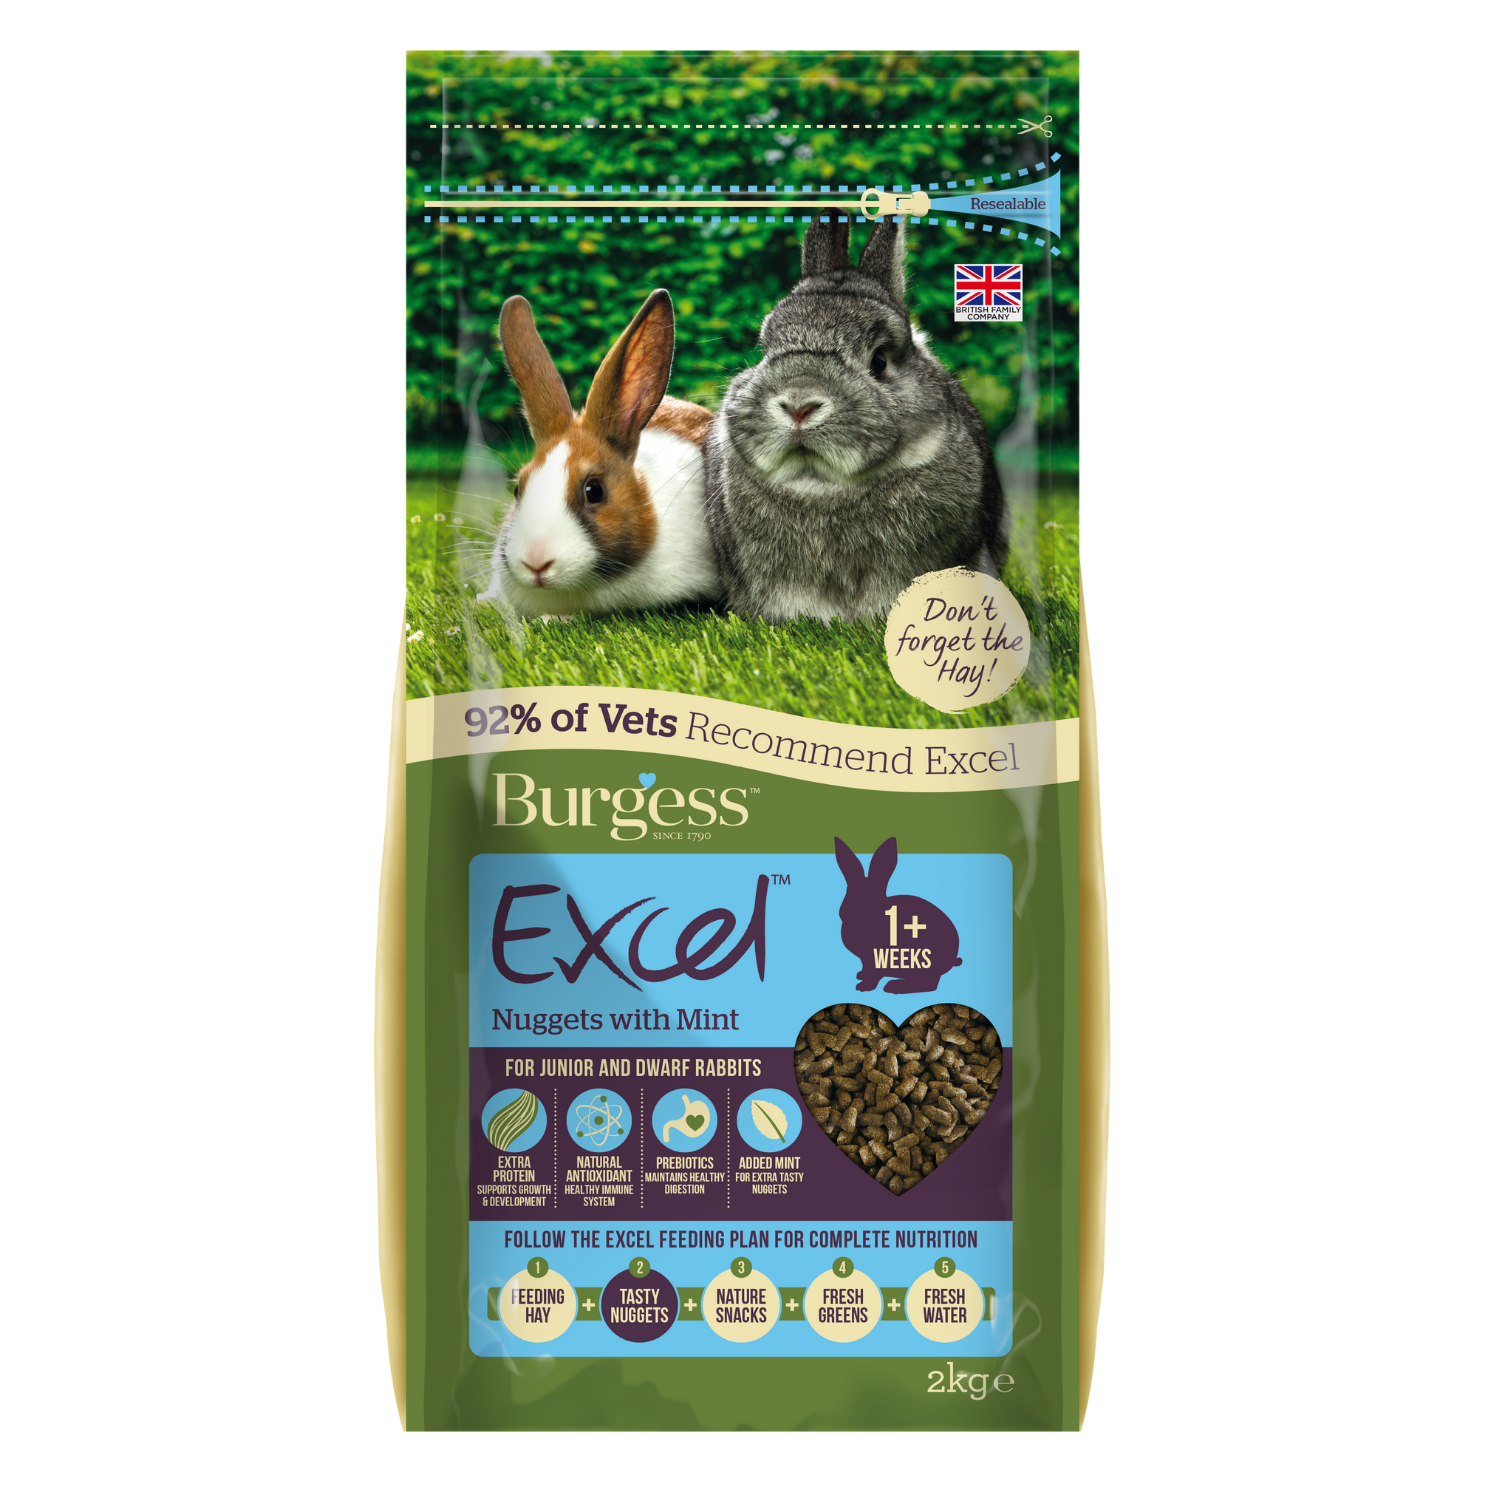 Burgess Excel Junior & Dwarf Rabbit Nuggets with (Mint) - 2kg